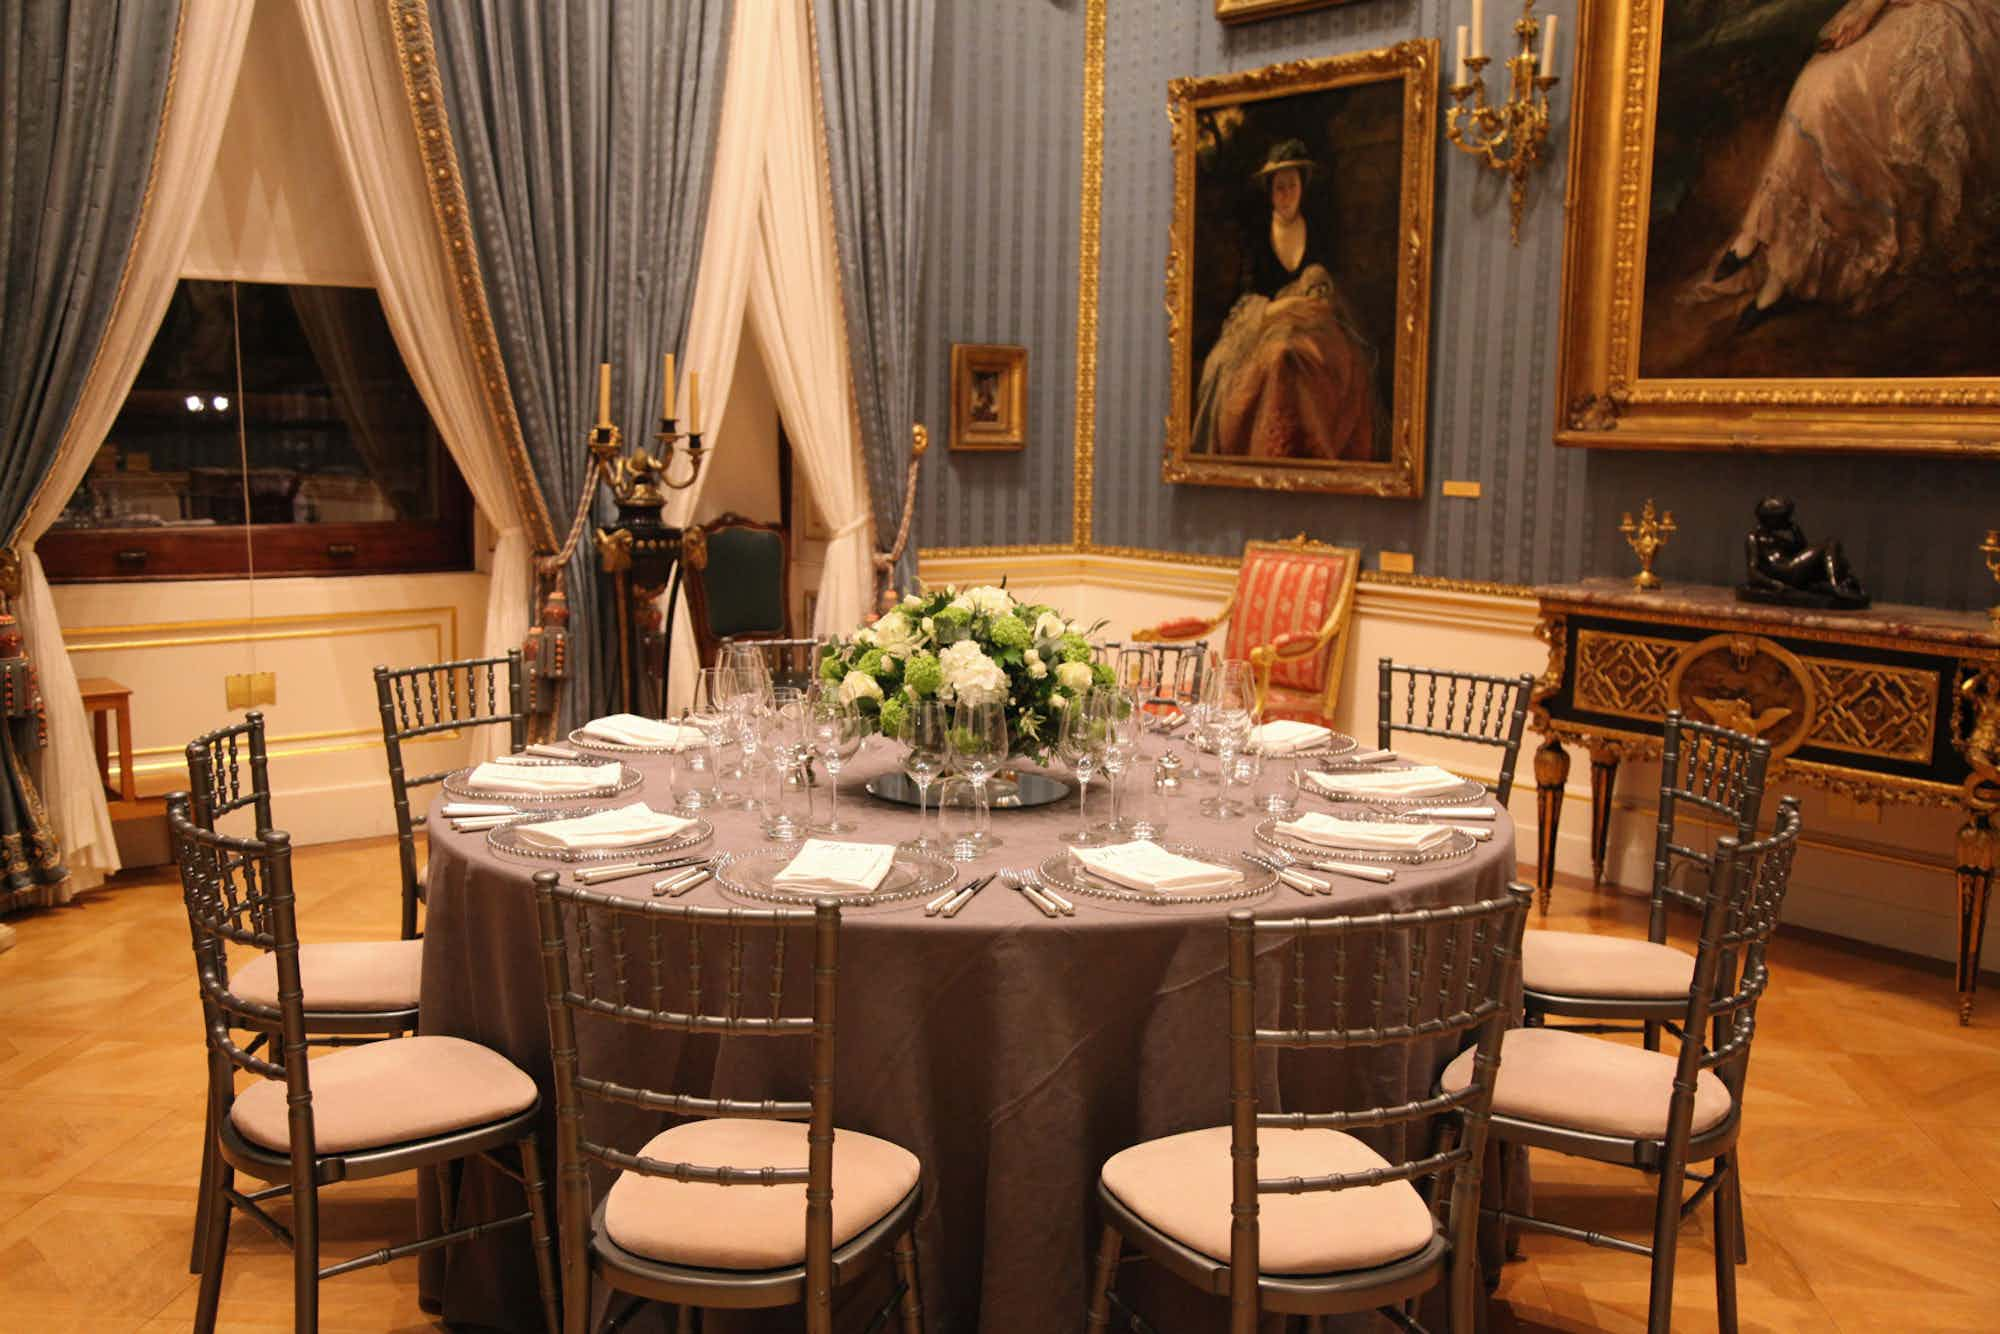 The West Room, The Wallace Collection